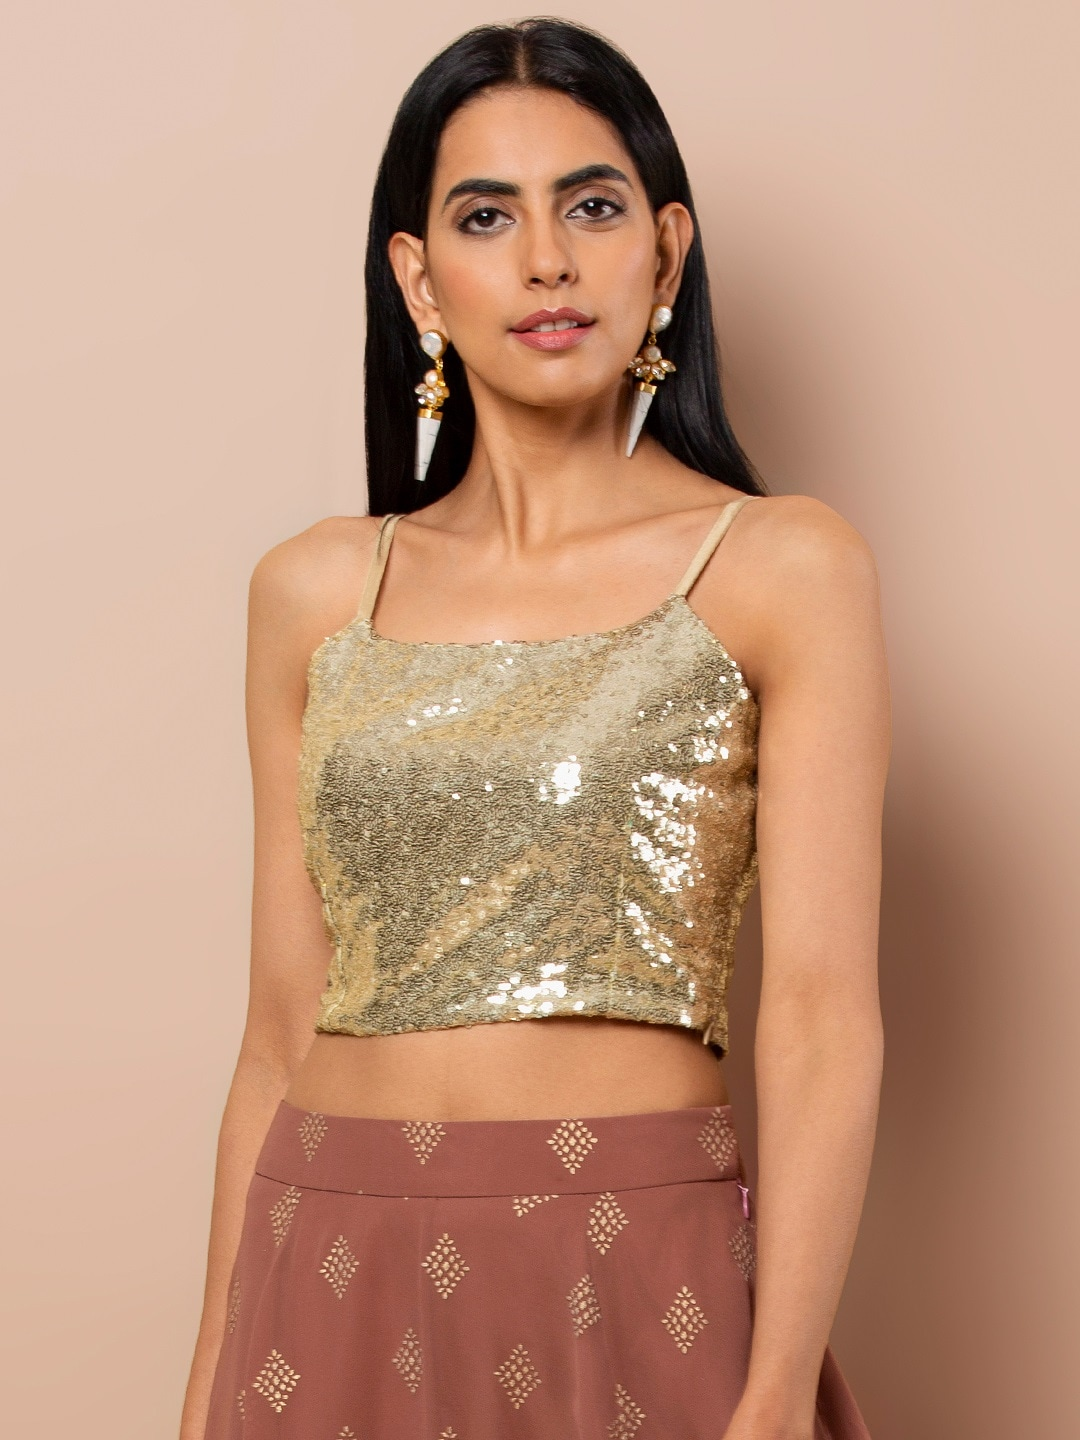 74f7a4ac02e Crop Tops - Buy Midriff Crop Tops Online for Women in India